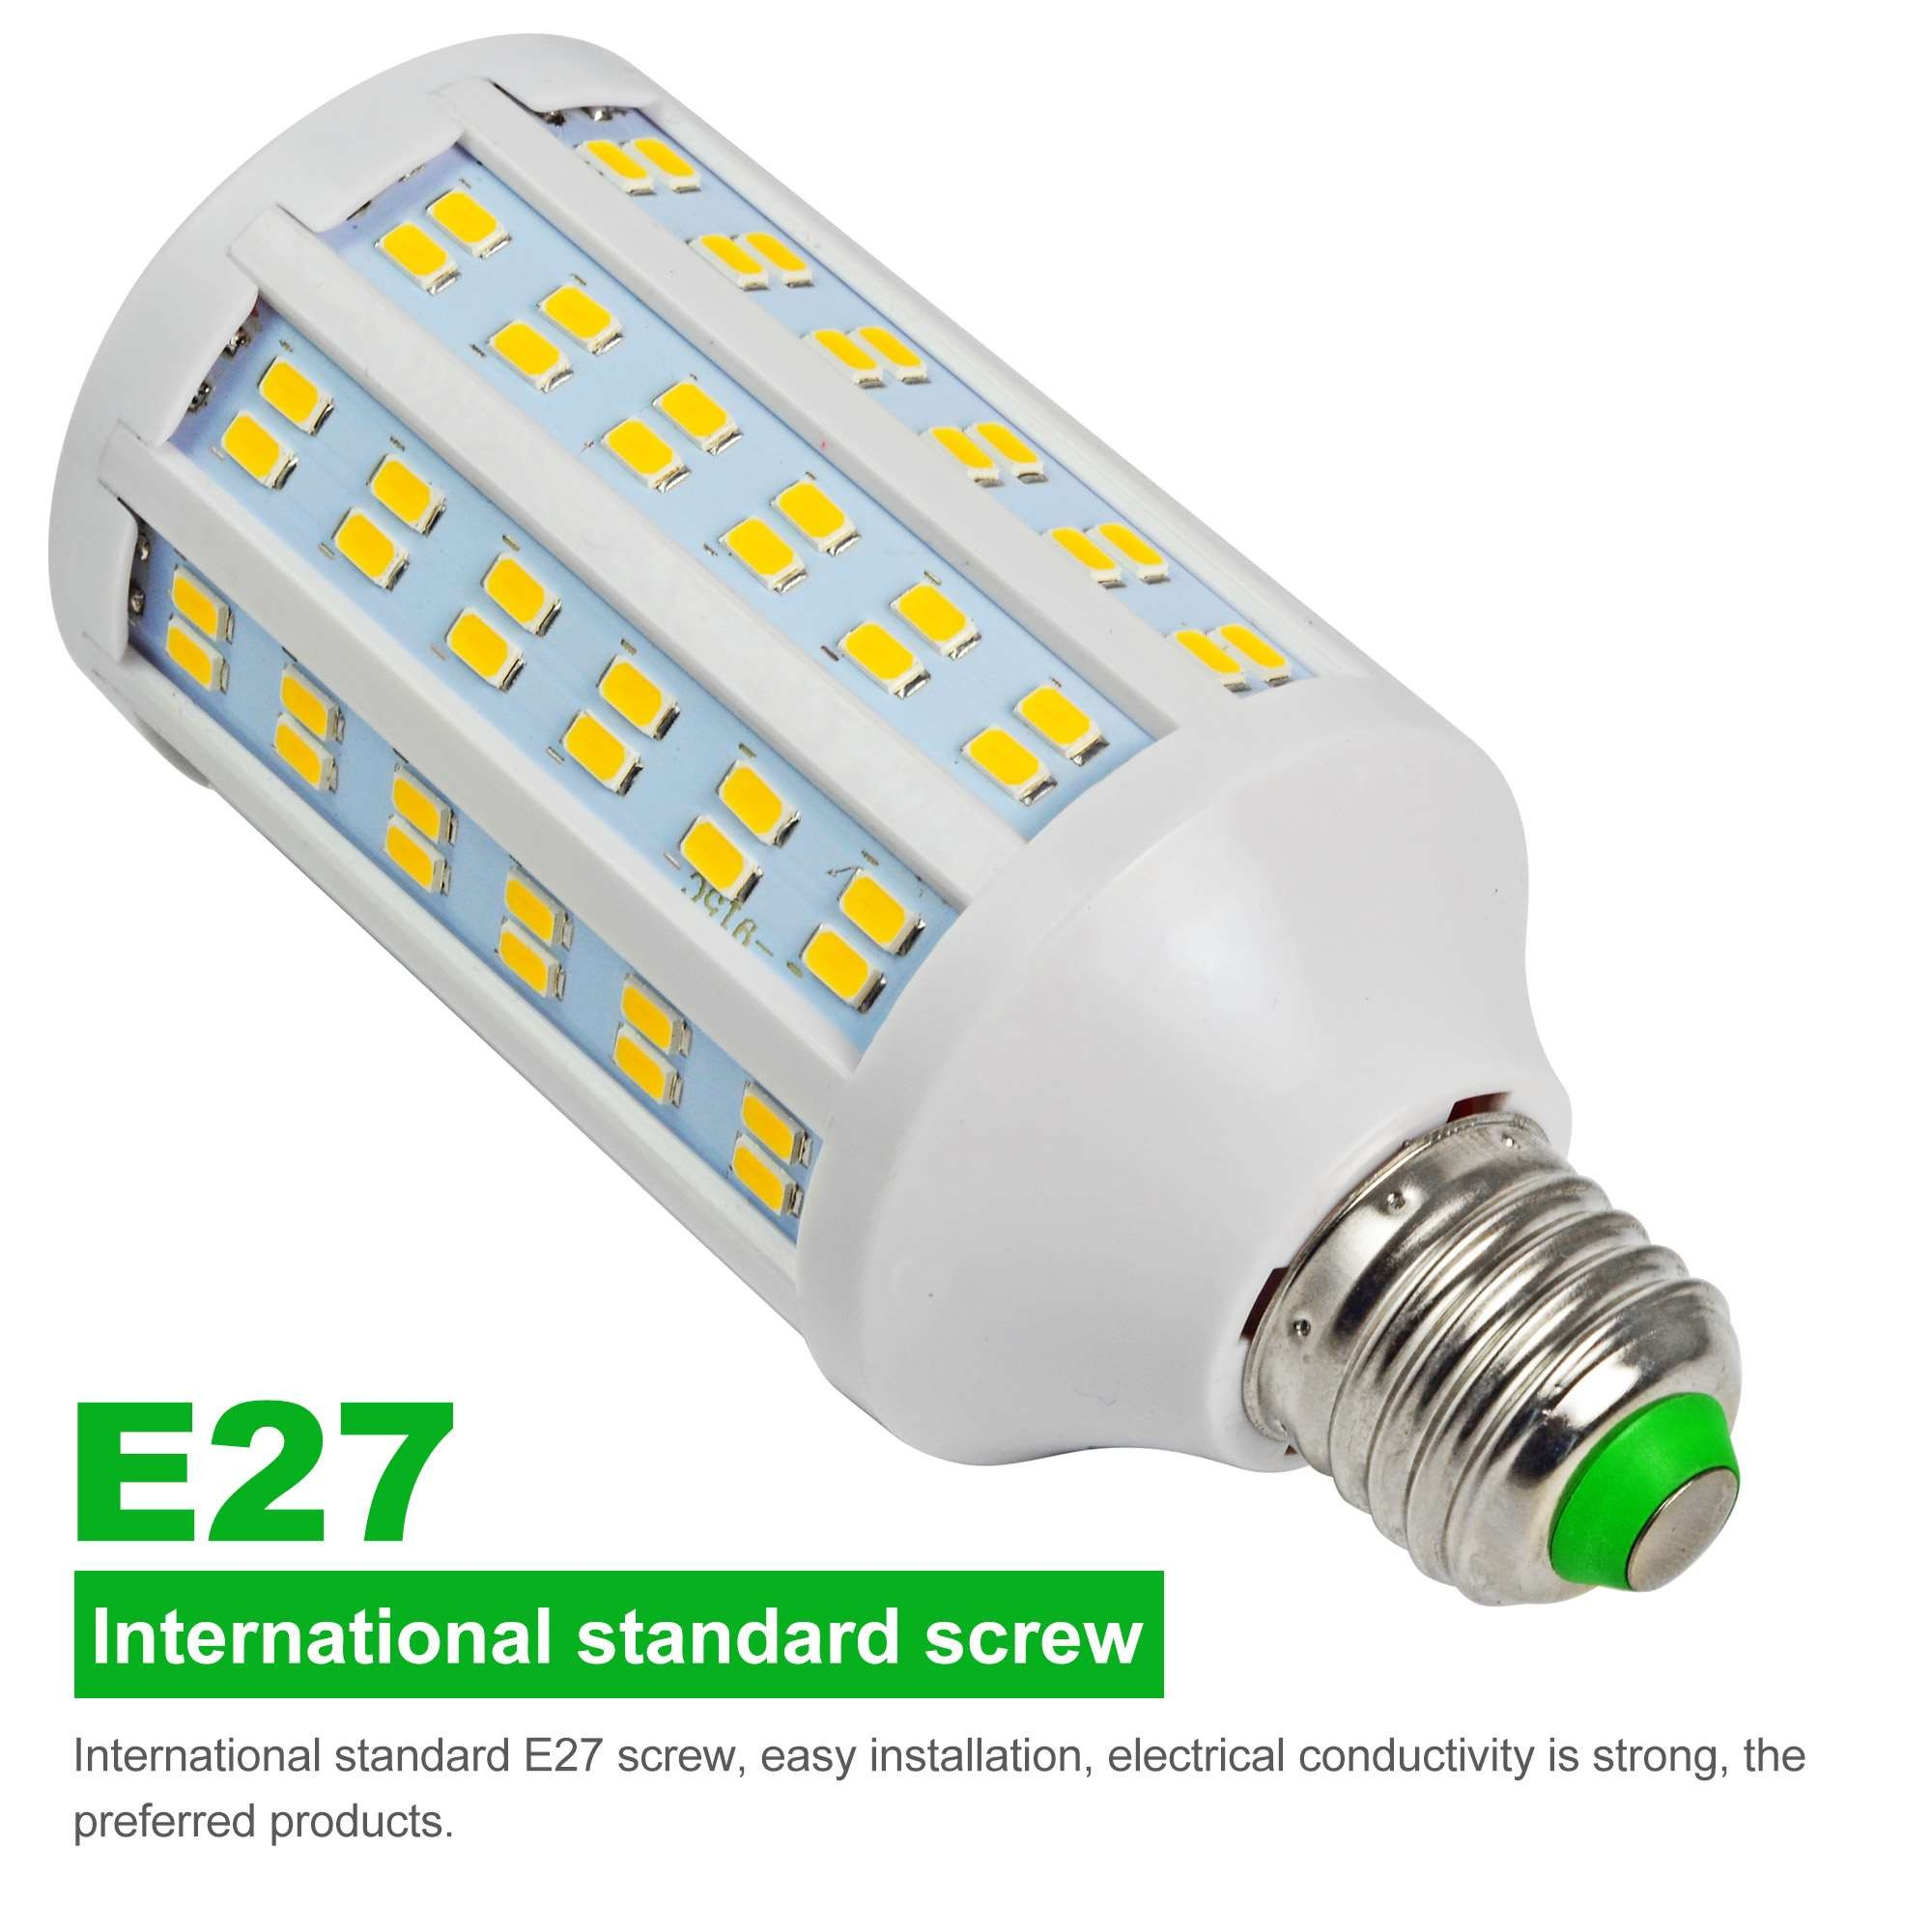 20w Led Dimmable: MENGS® E27 20W LED Dimmable Corn Light 144x